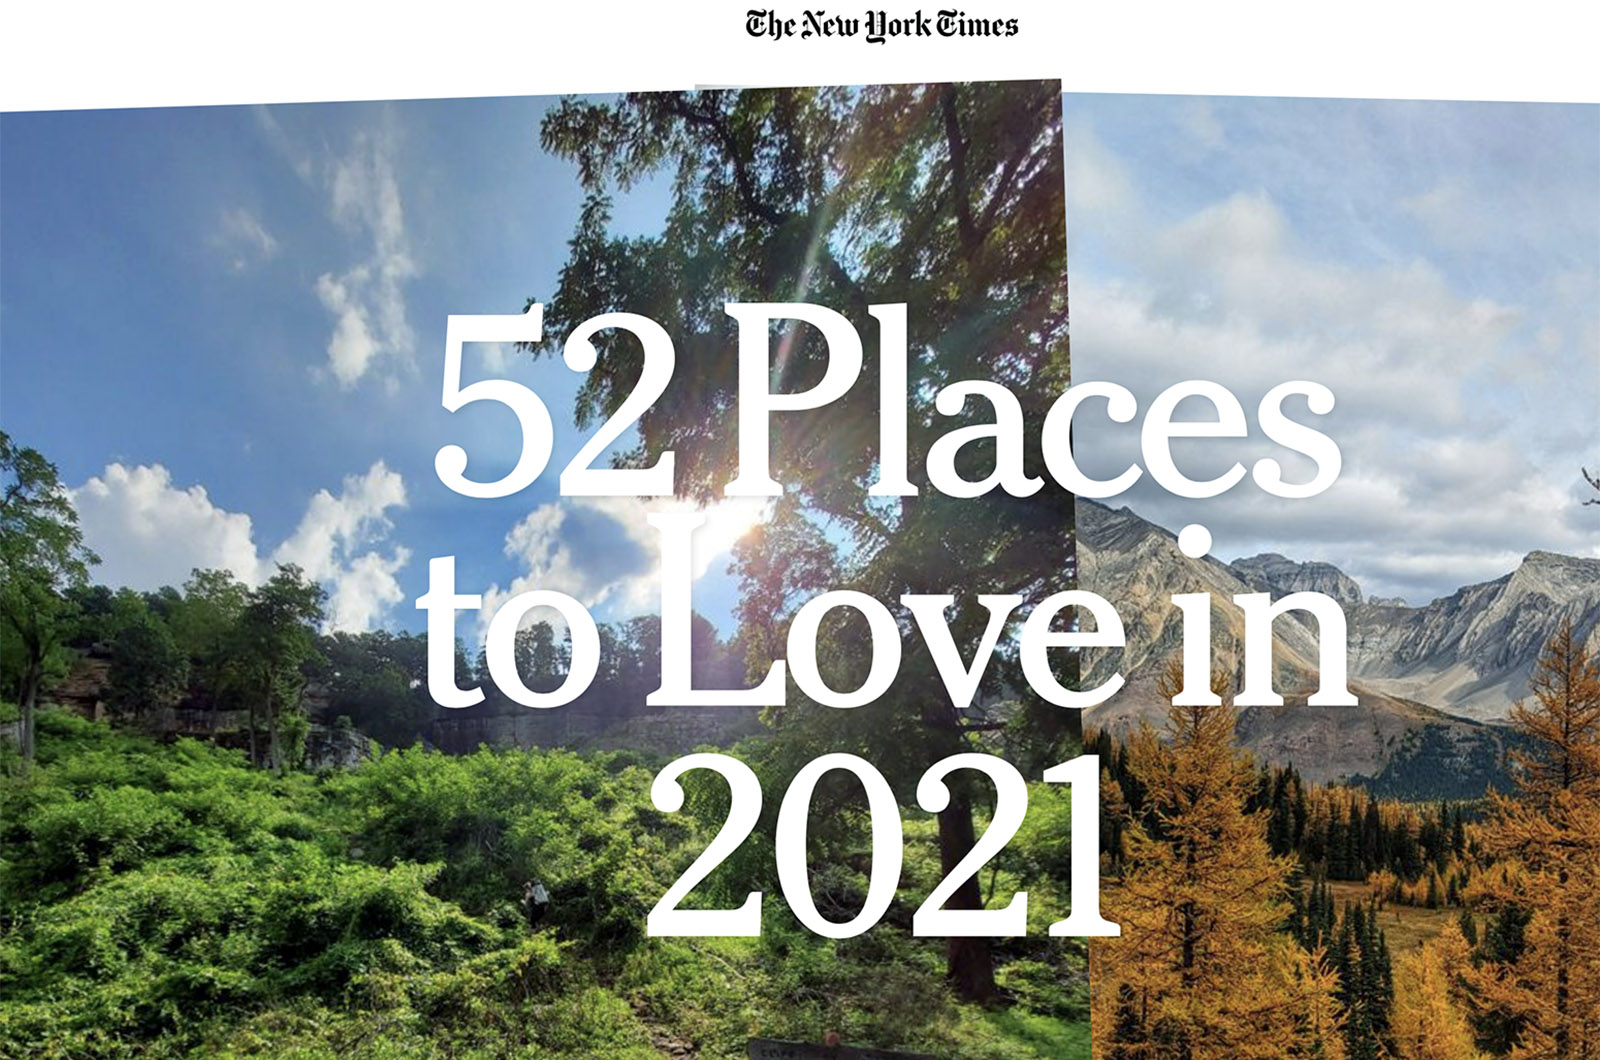 52-places-to-love-the-new-york-times-.jpg